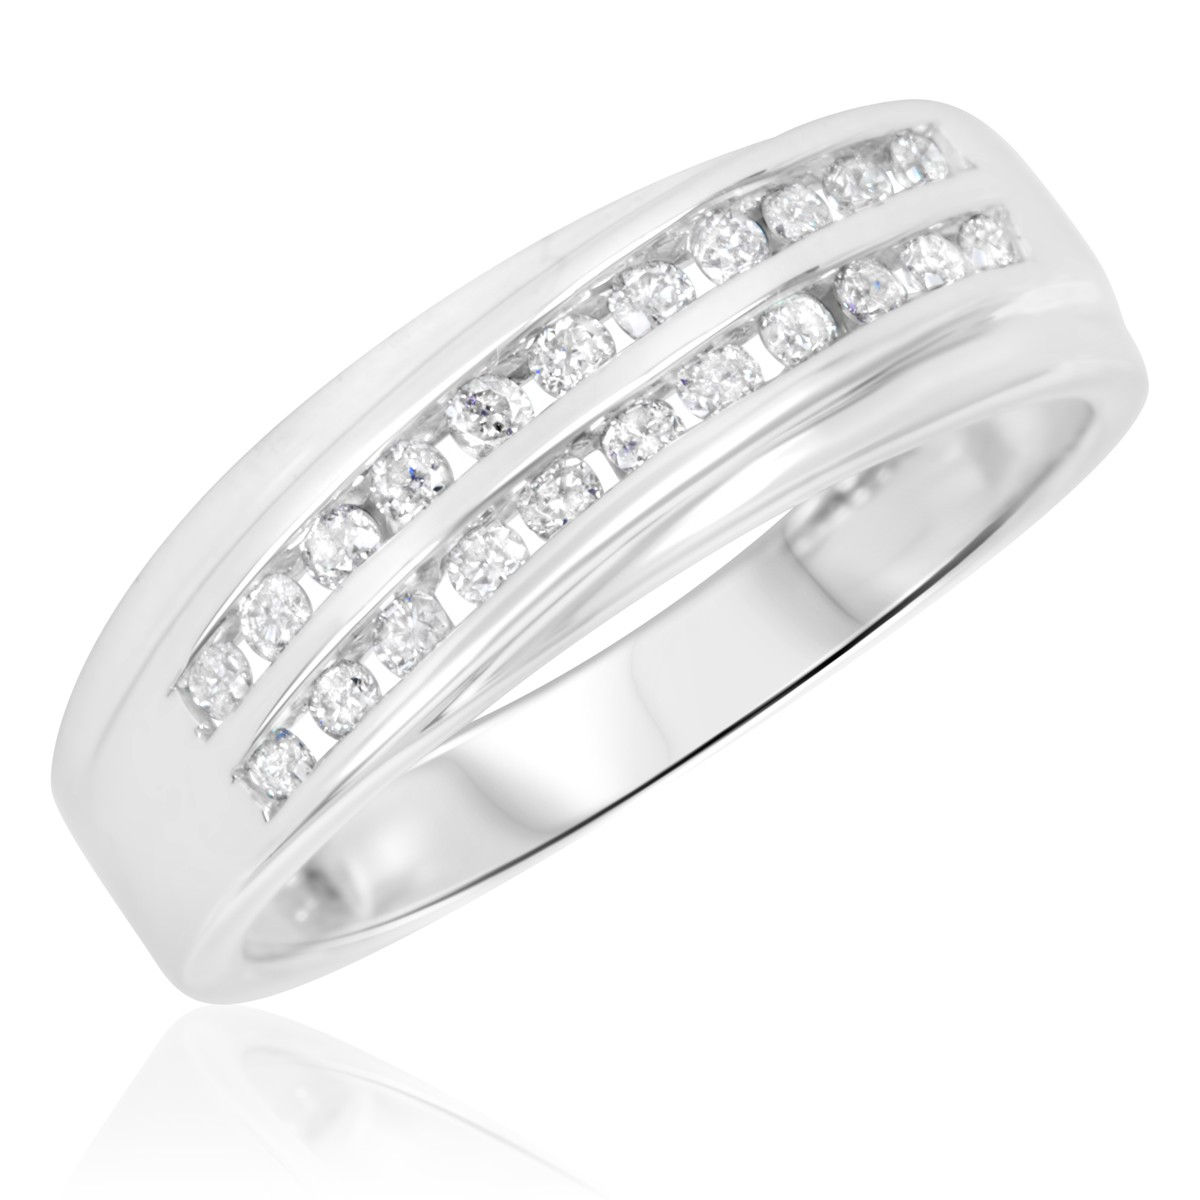 1/3 Carat T.W. Diamond Ladies' Wedding Band 14K White Gold